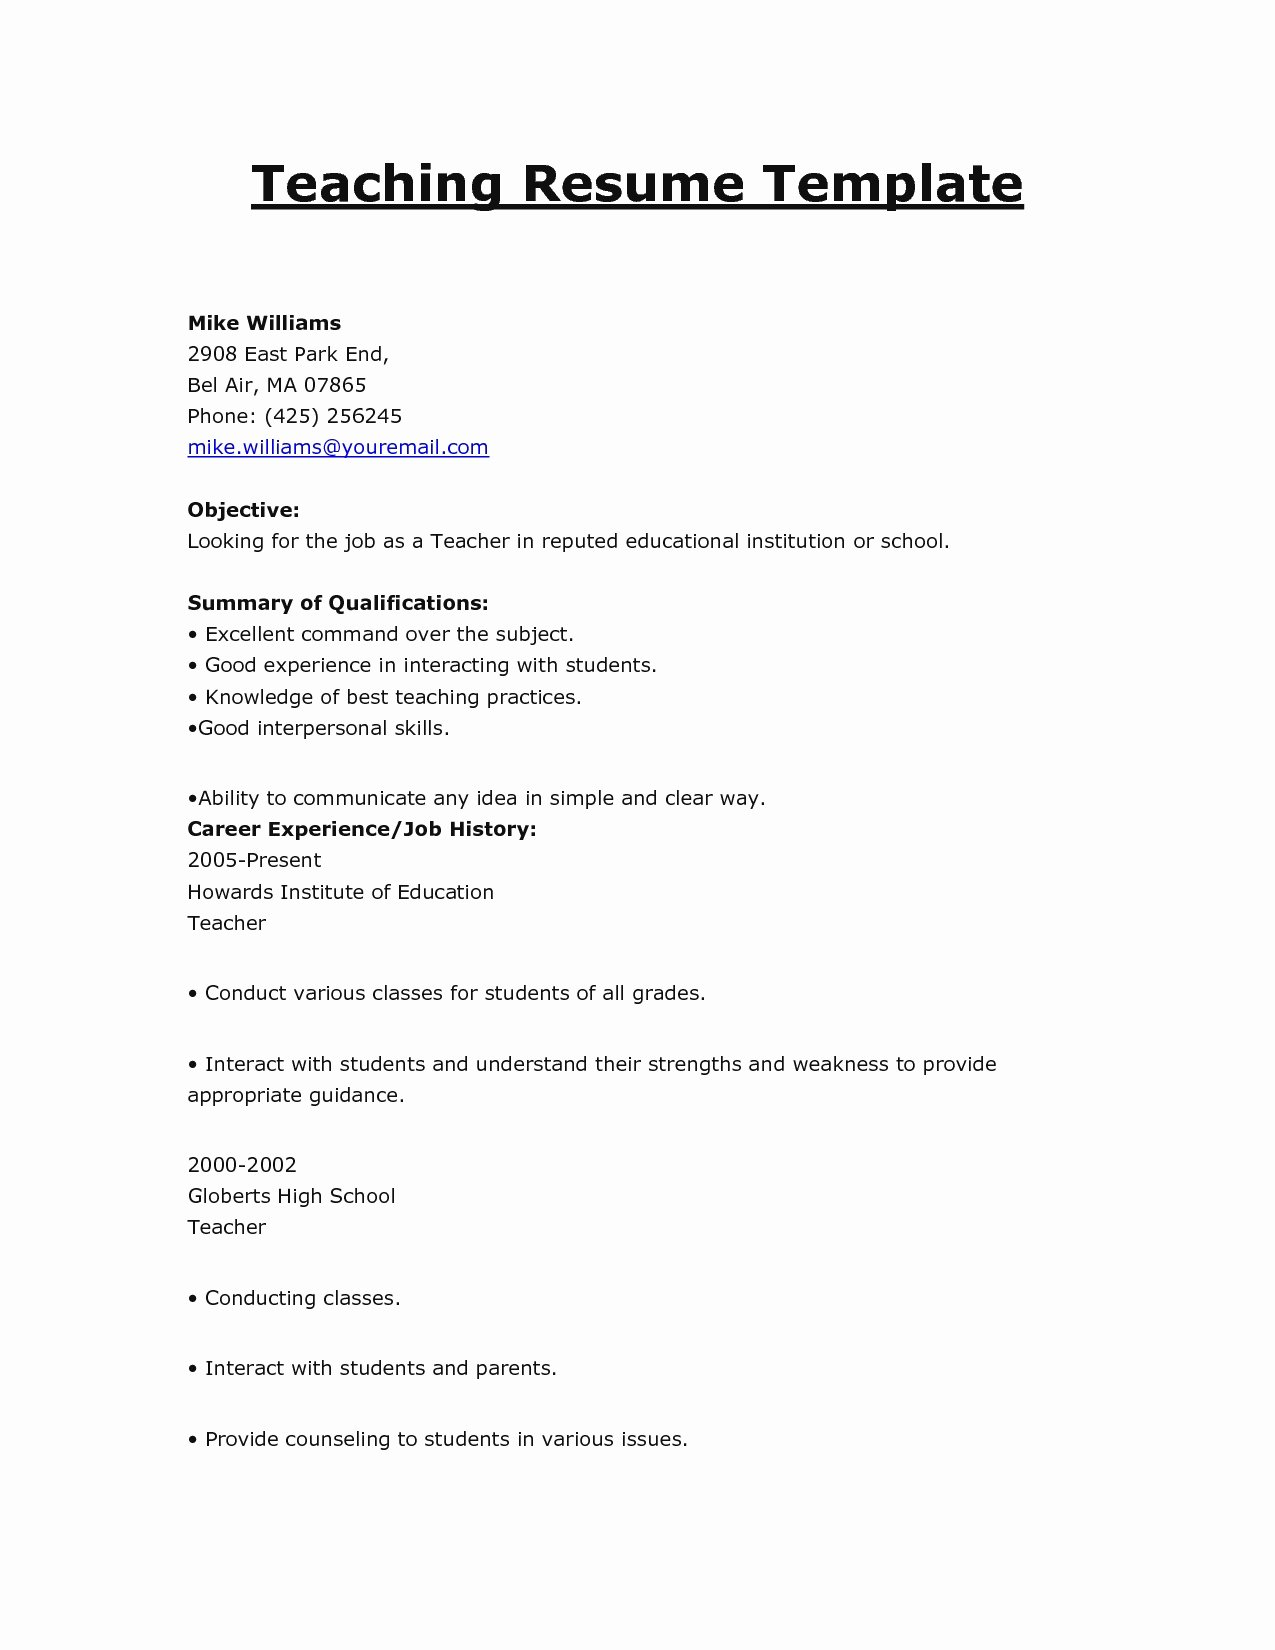 Resume Teaching Position Resume Ideas